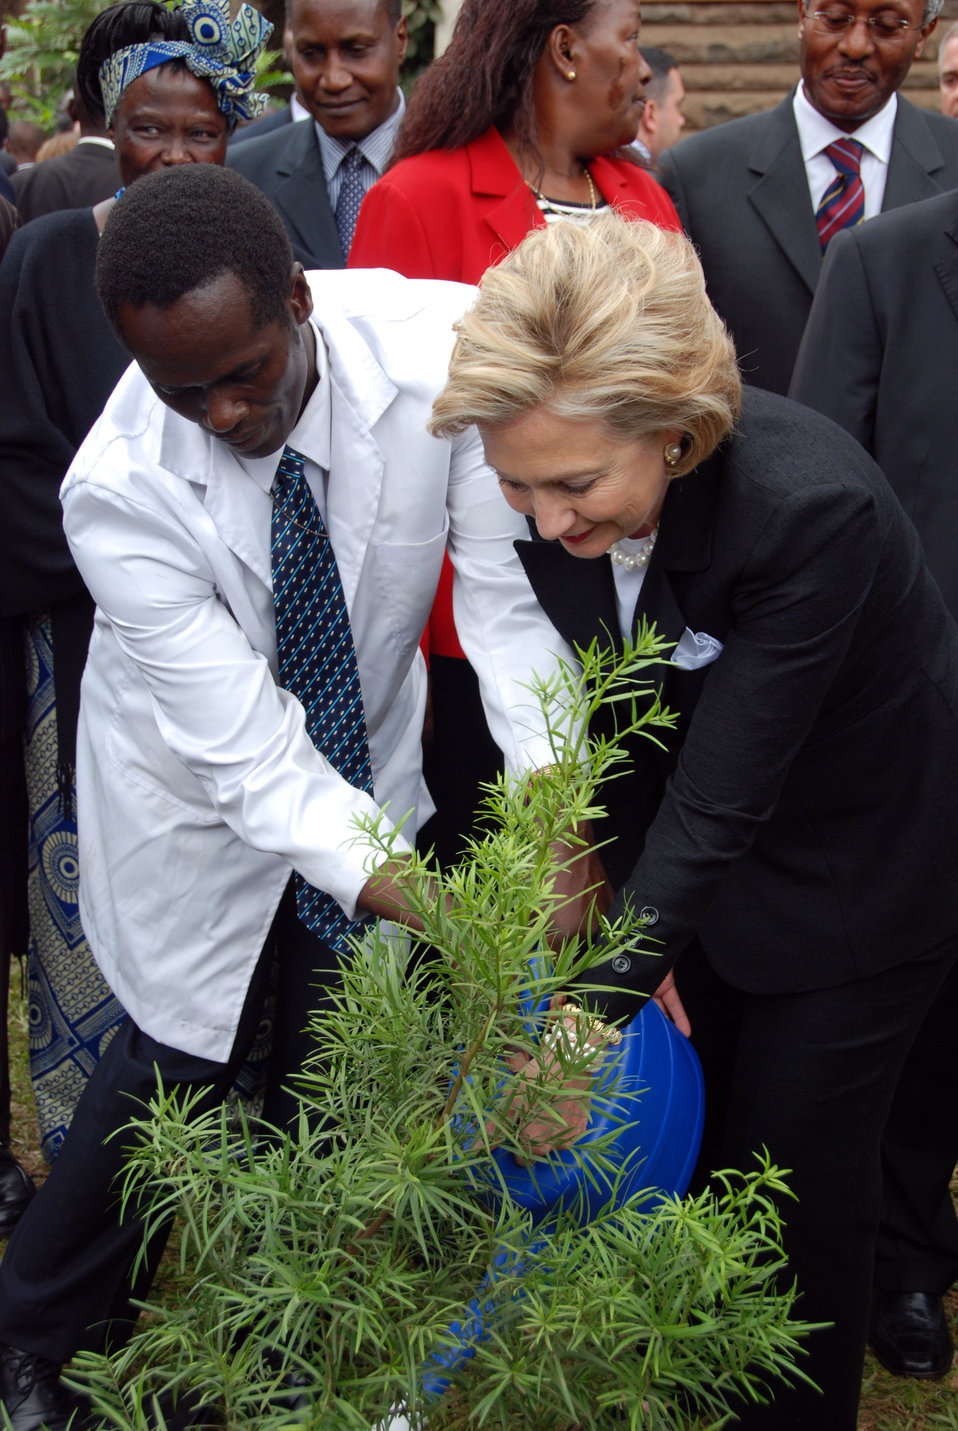 Secretary Clinton Ceremonial Tree Planting